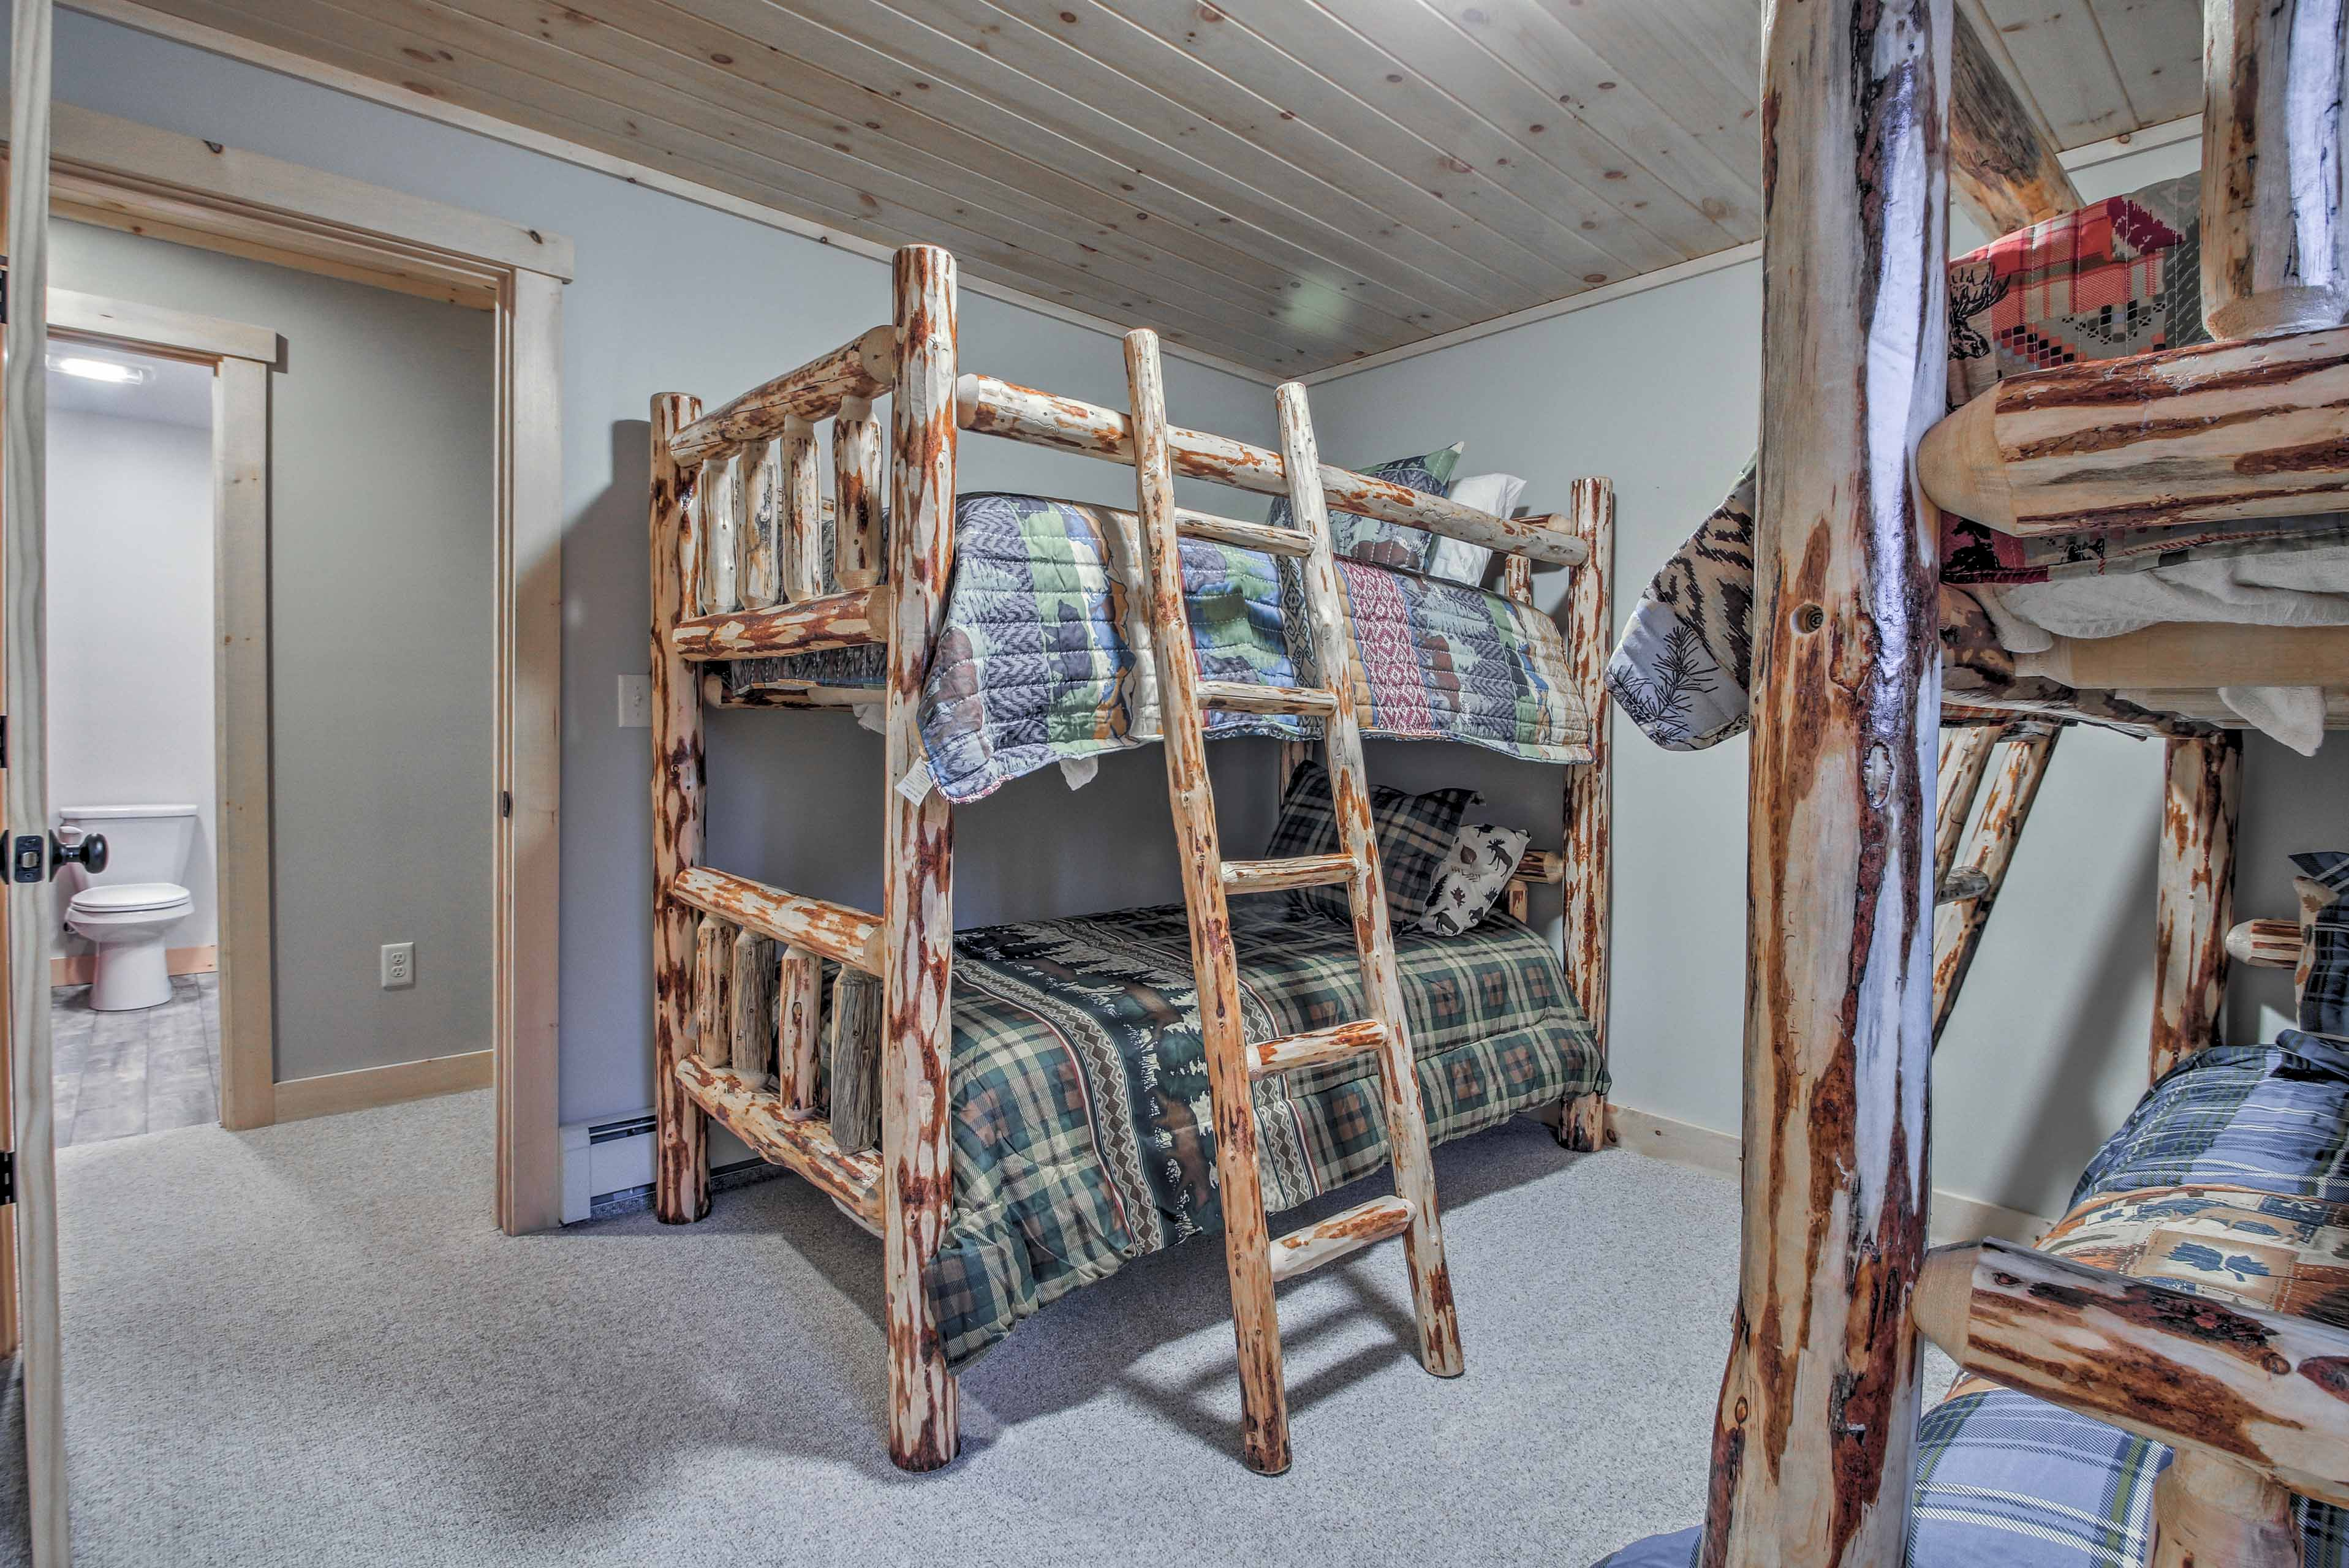 Up to 4 travelers can stay in these twin-over-twin bunk beds.